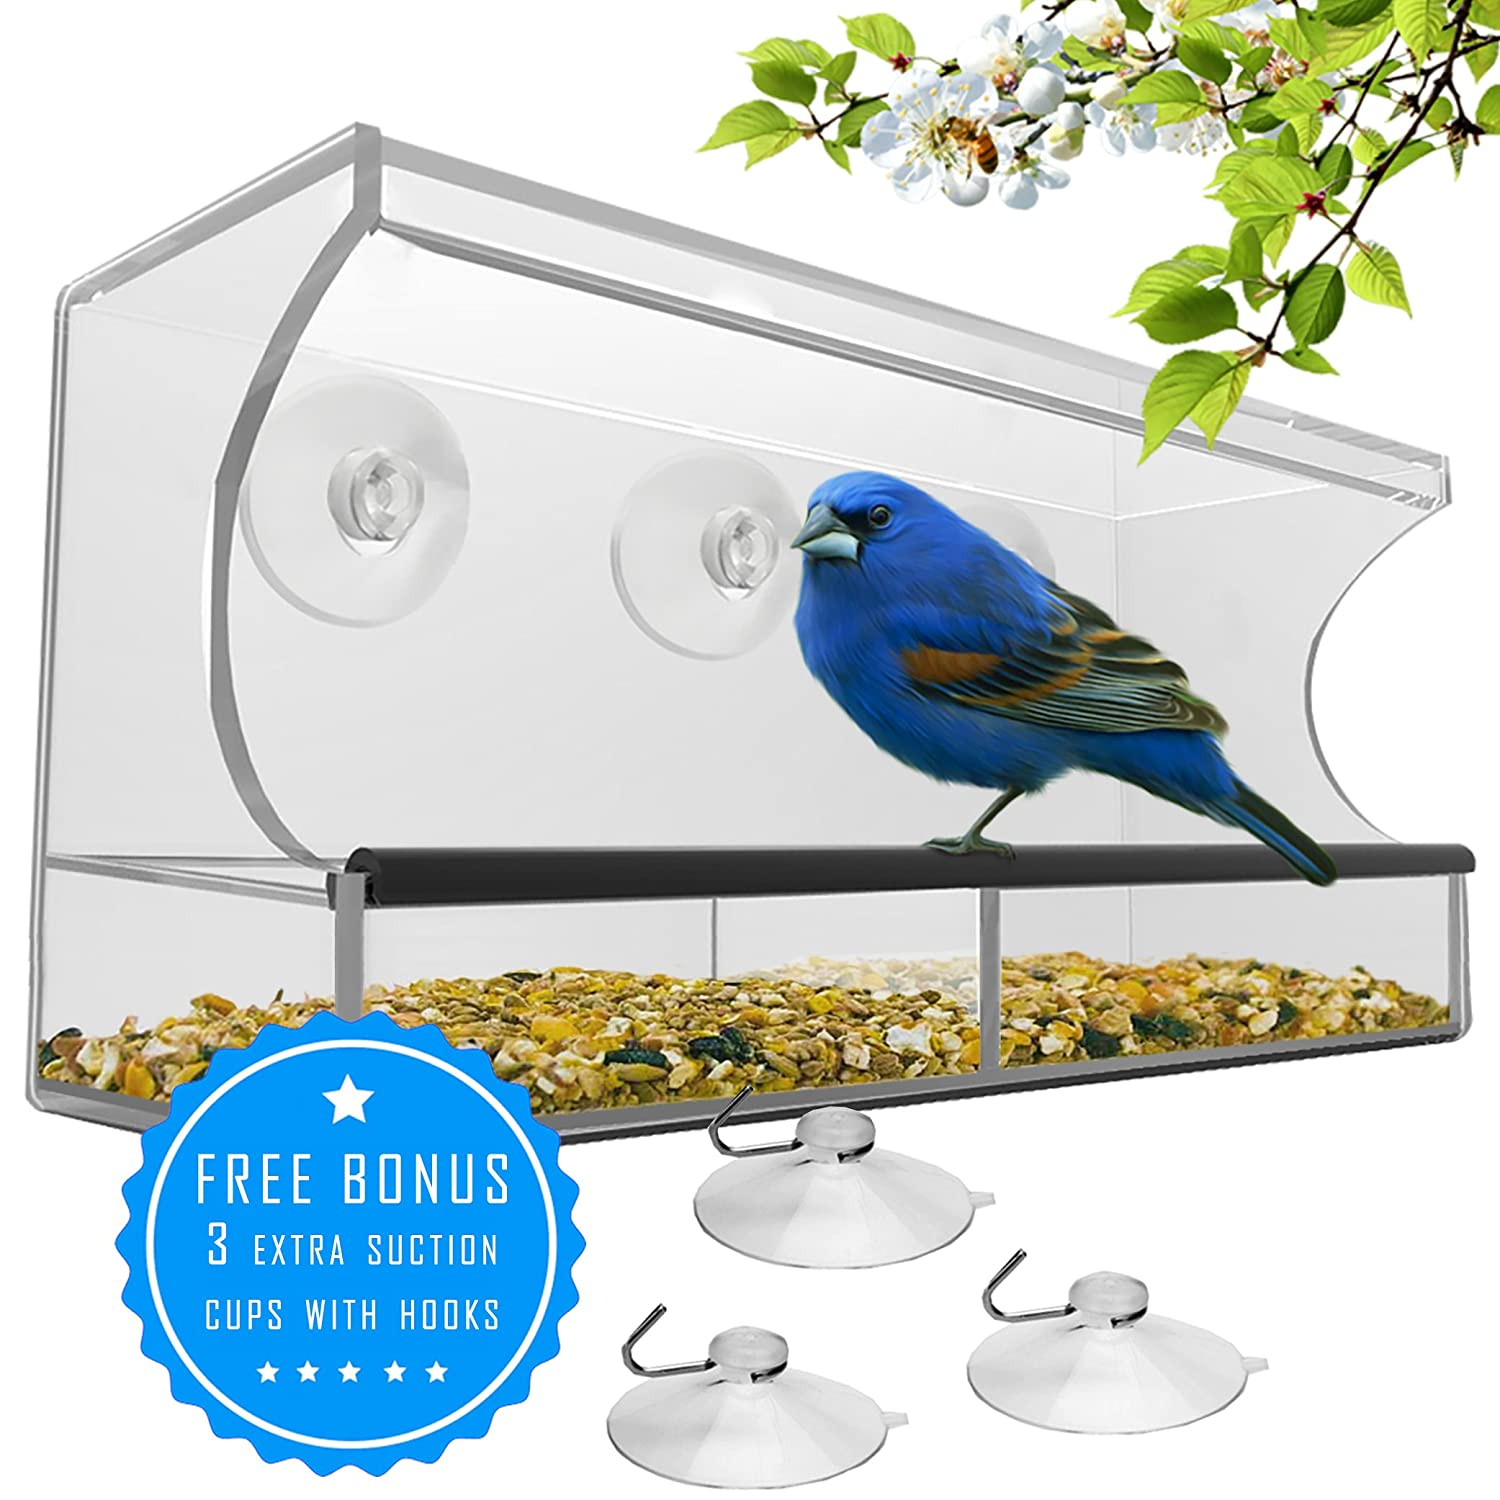 amazon com nature s hangout window bird feeder with removable amazon com nature s hangout window bird feeder with removable tray drain holes and 3 free extra suction cups large size 100 clear acrylic